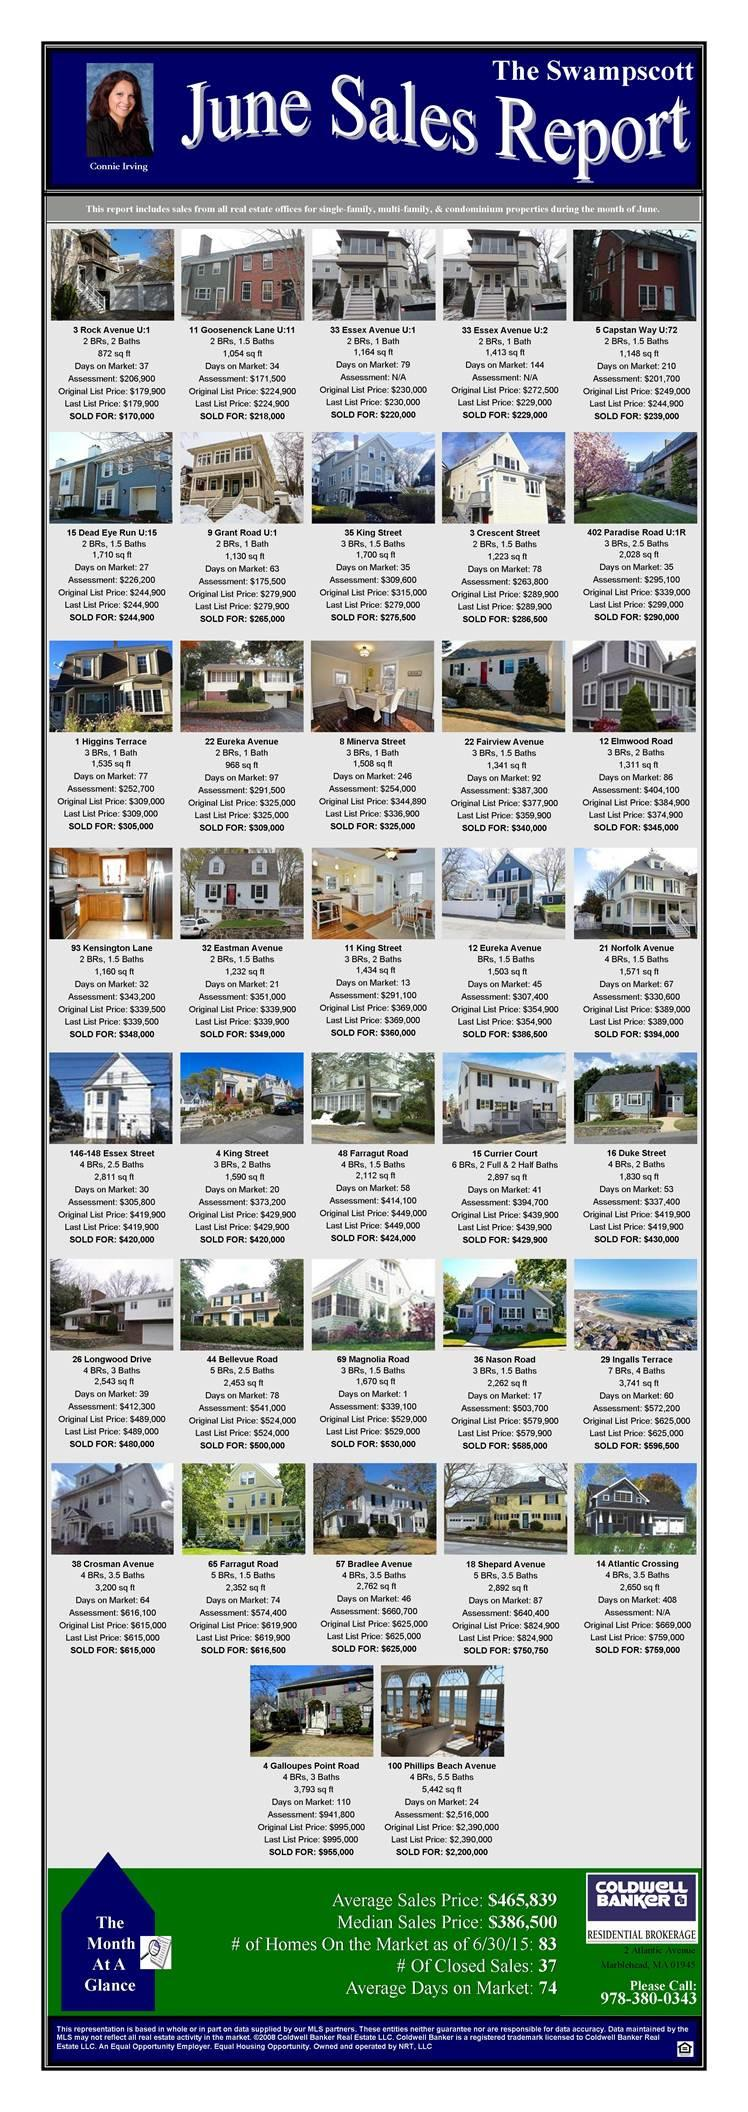 june sales report swampscott